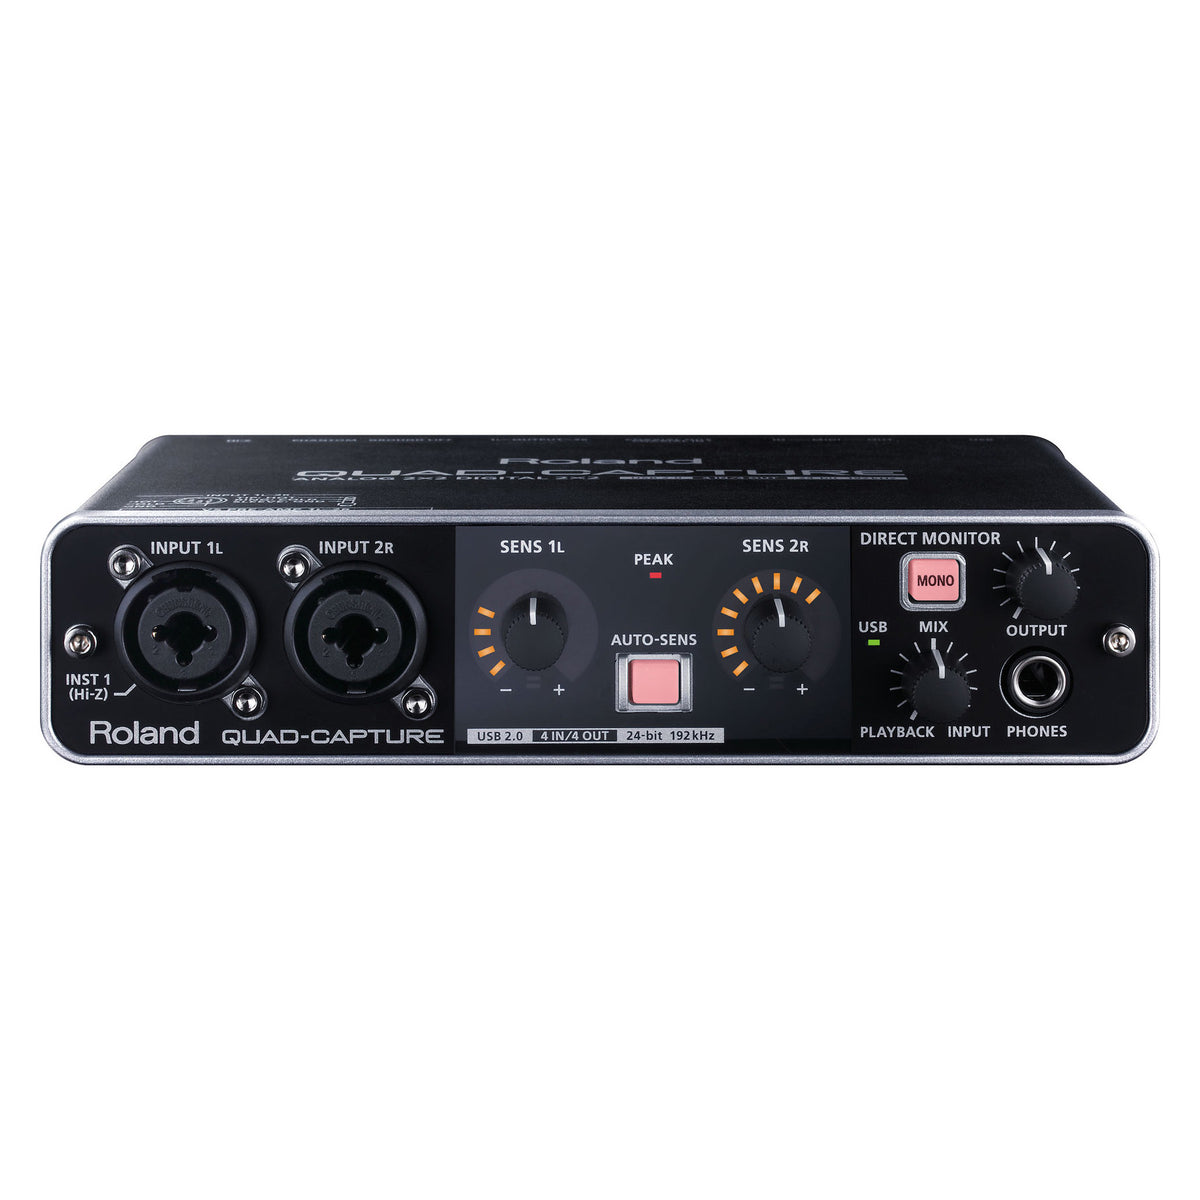 Roland: Quad-Capture USB 2.0 Audio Interface (UA-55)